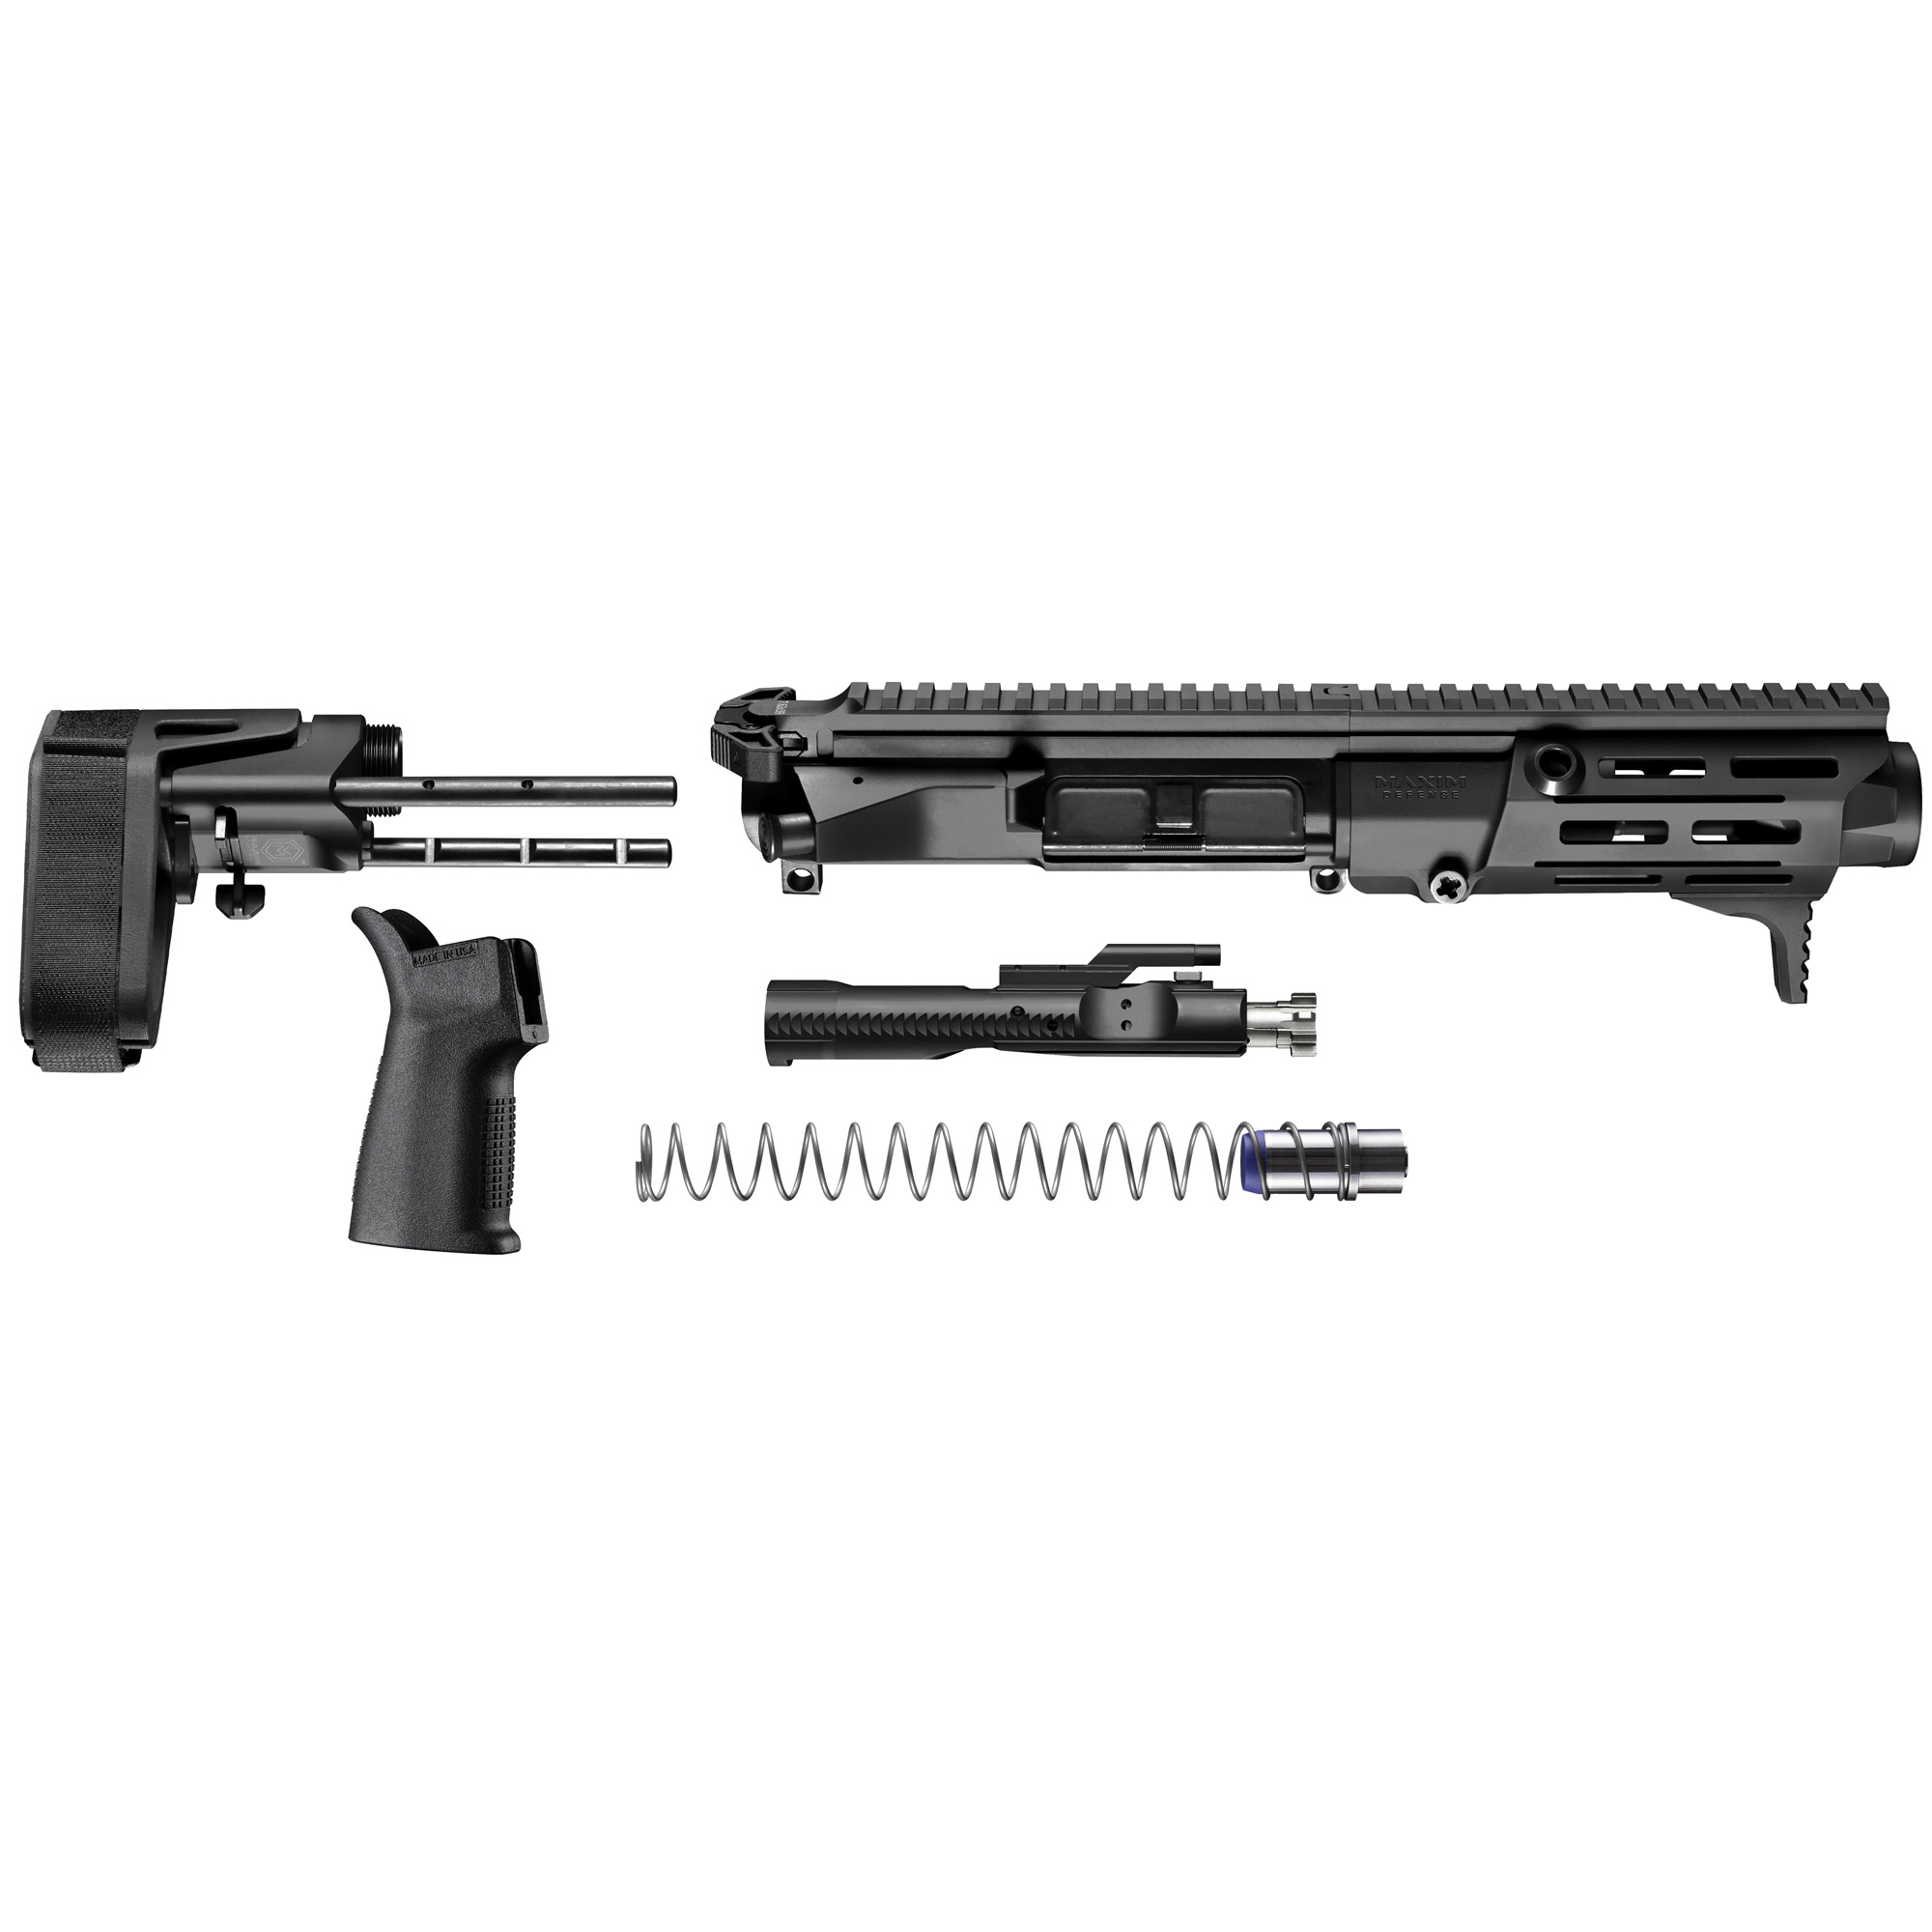 """Born from the SOCOM PDW solicitation"""" the NEW Maxim Defense PDX(TM) U.R.G. is designed to handle the fierce demands of the Tier 1 community. The PDX(TM) U.R.G. dominates in close quarter encounters and achieves maximum energy on target without sacrificing accuracy at distance. At just 14"""" in overall length"""" the PDX(TM) U.R.G. is the ultimate choice for when concealment and personal defense is non-negotiable. At the heart of the PDX(TM) KIT is our newly developed Maxim SCW(TM) stock system. This patent-pending design cuts down the length of the stock to 4"""" and offers an integrated BCG with interchangeable buffer weights to give you the flexibility to maximize performance and versatility without sacrificing functionality or form. The PDX(TM) KIT is also equipped with newly invented Maxim HATEBRAKE(TM) Muzzle Booster. This patent-pending device significantly reduces recoil"""" decreases the flash signature"""" pushes gasses and concussion waves downrange away from the operator improving overall execution in short barrel pistols and rifles. The PDX Kit uses a Direct Impingement system. The PDX Kit comes with everything you need to turn your lower receiver into a Maxim Defense PDX"""